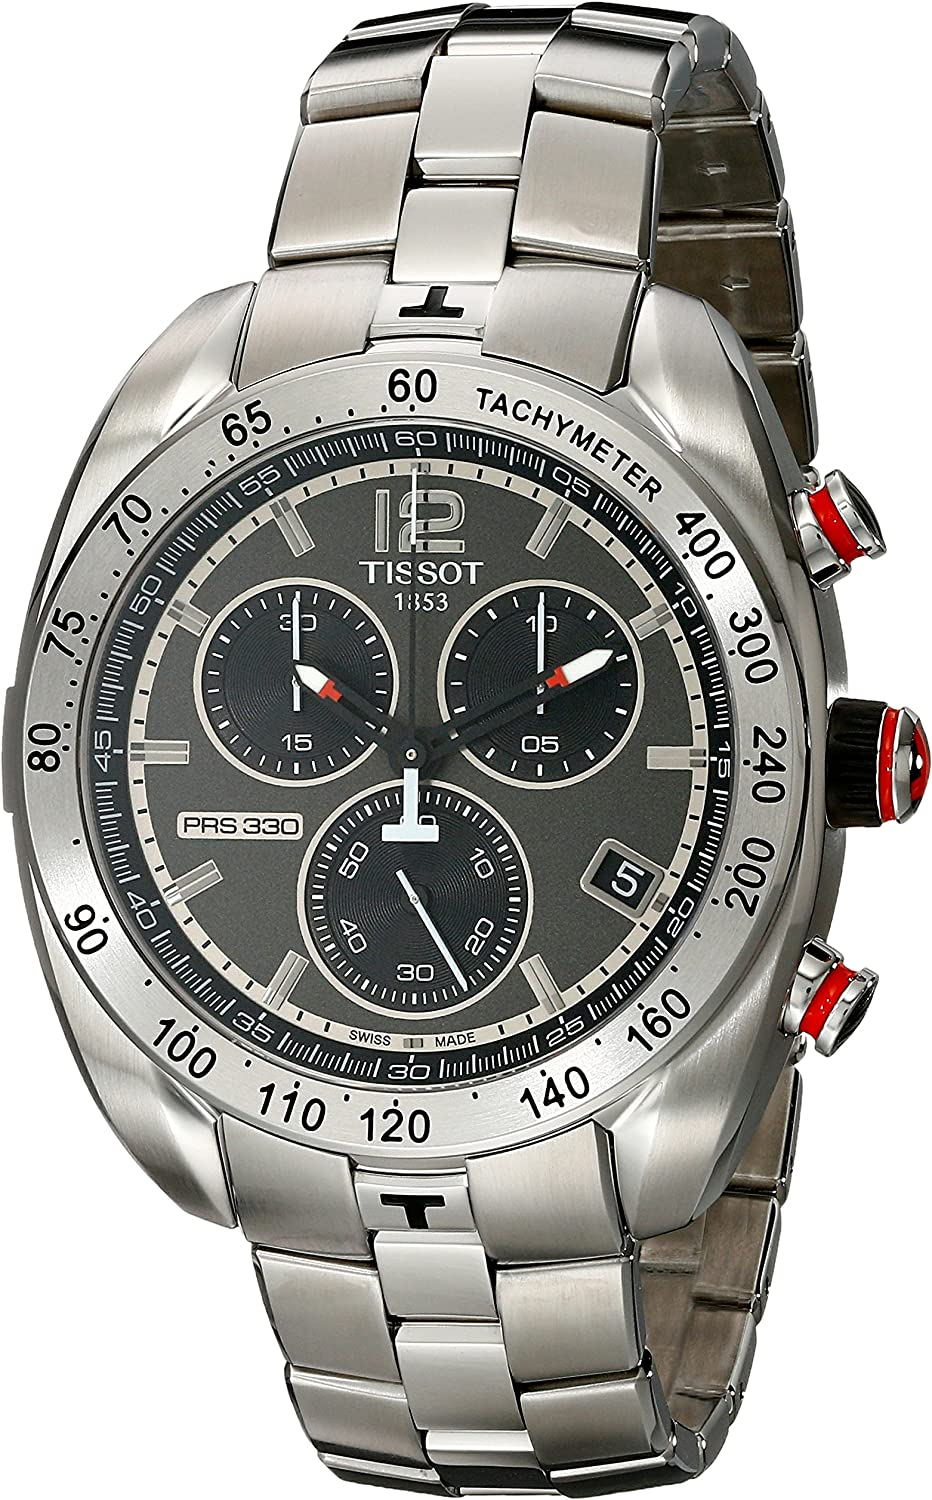 Tissot Men s PRS 330 Anthracite Dial Stainless Steel Chronograph Watch T076.417.11.067.00